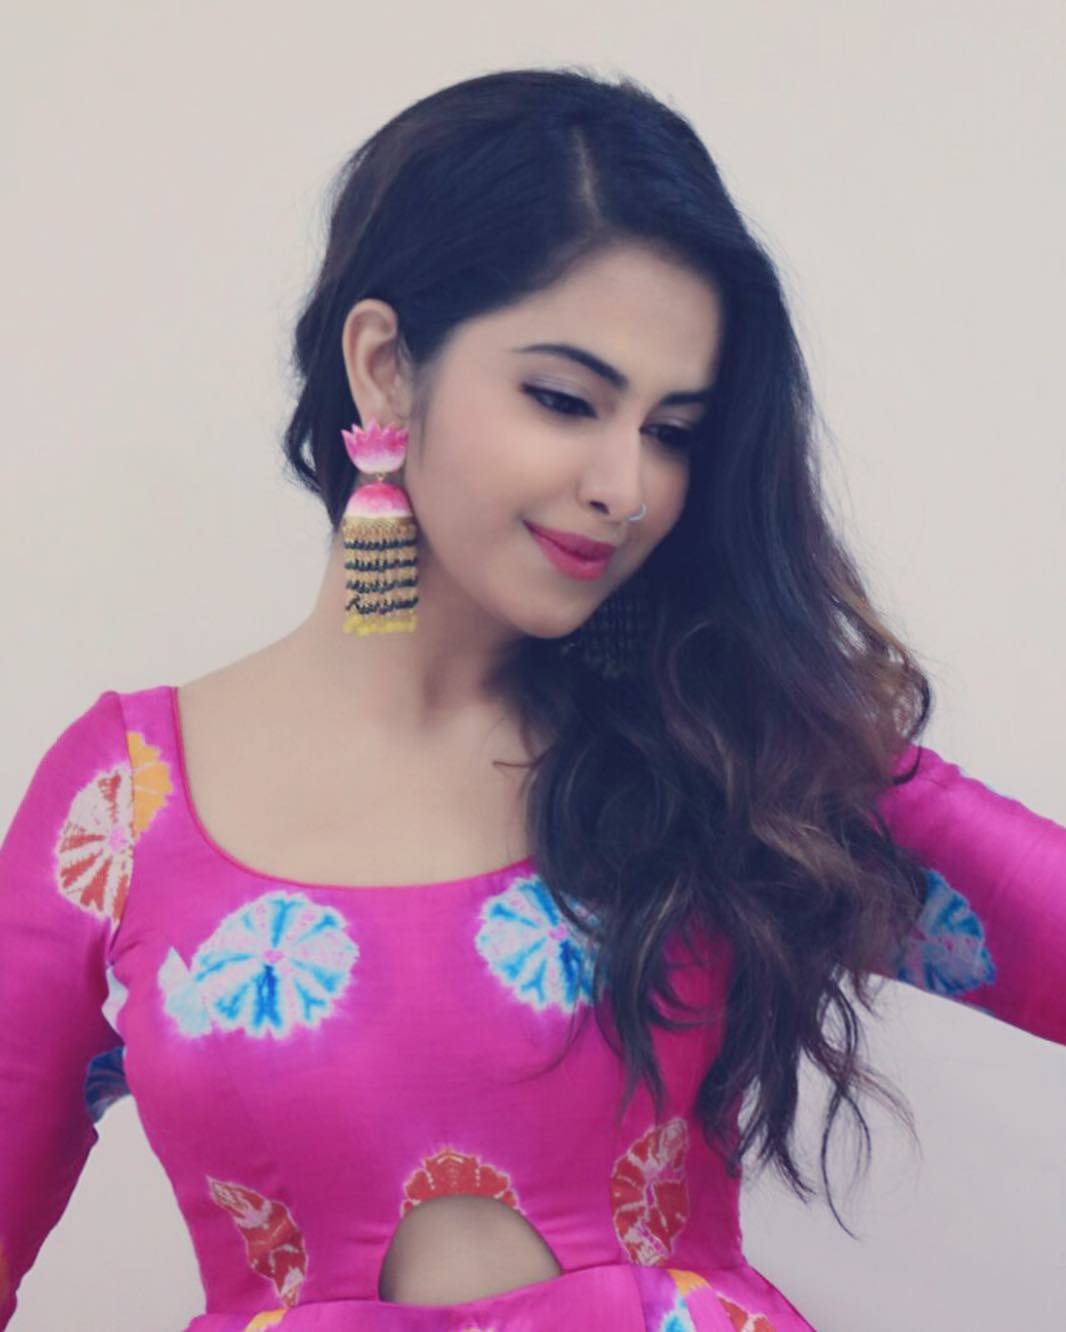 avika gor hd wallpaper and best pictures collection bollywood popular avika gor hd wallpaper and best